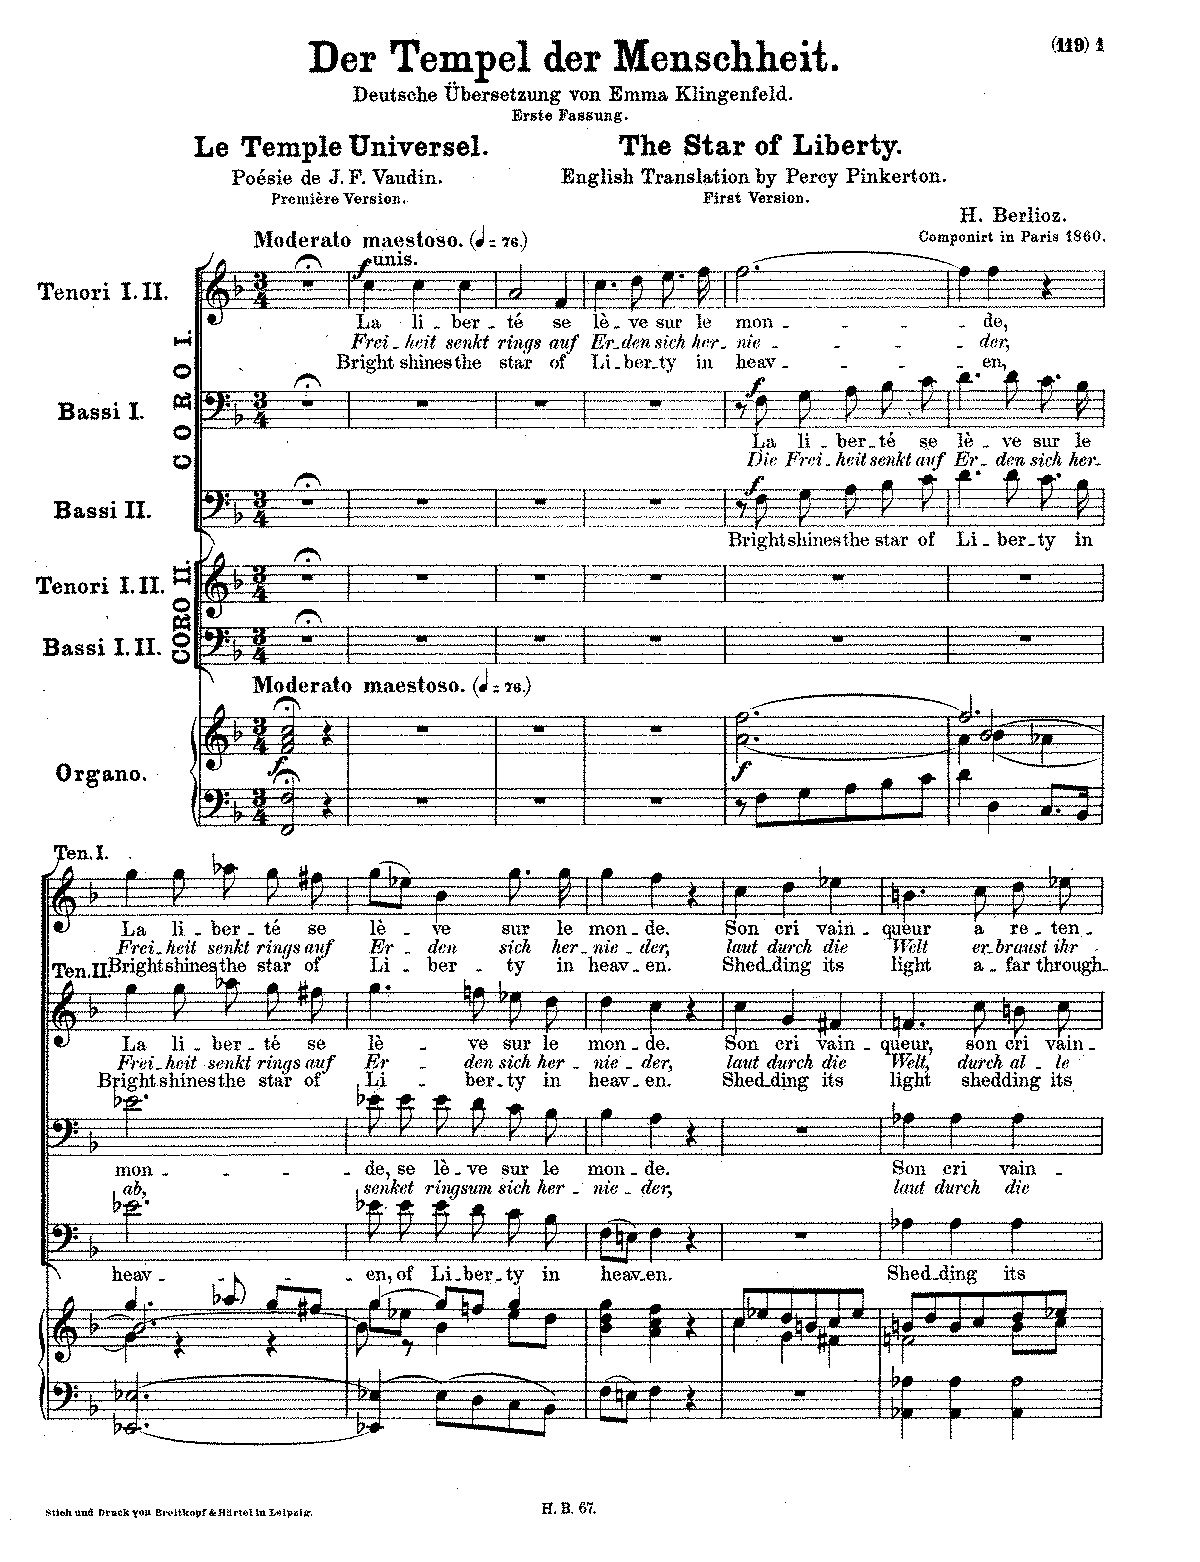 PMLP130830-Berlioz - Le temple universel - First Version (vocal score).pdf